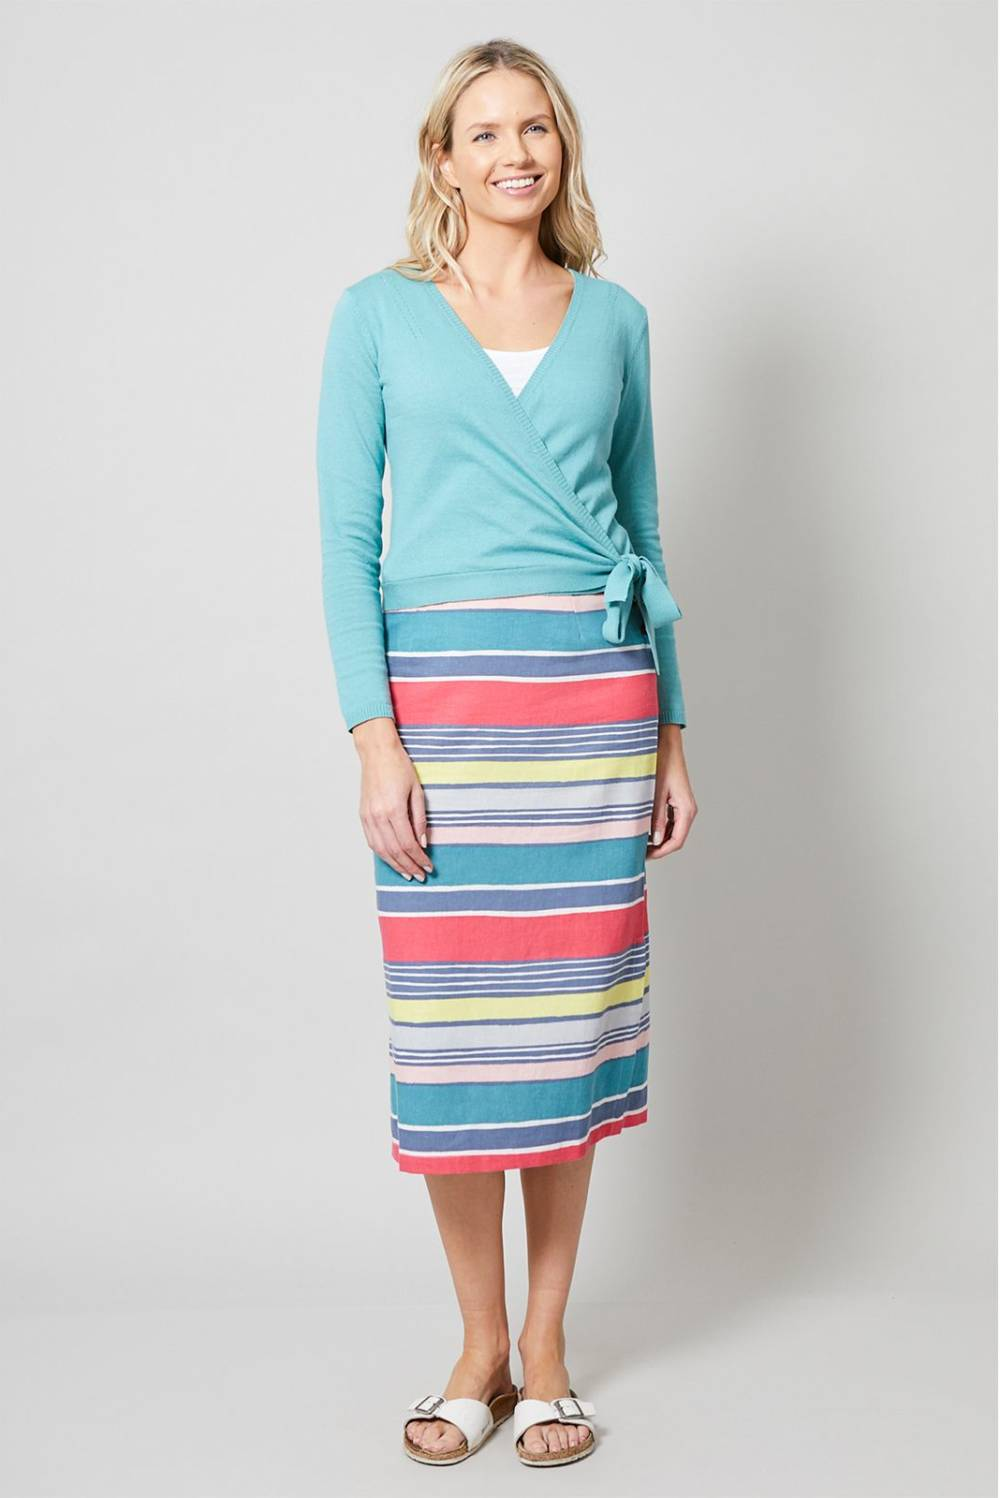 Midi Skirt Stripe Lily and Me Katie Kerr Women's Clothing